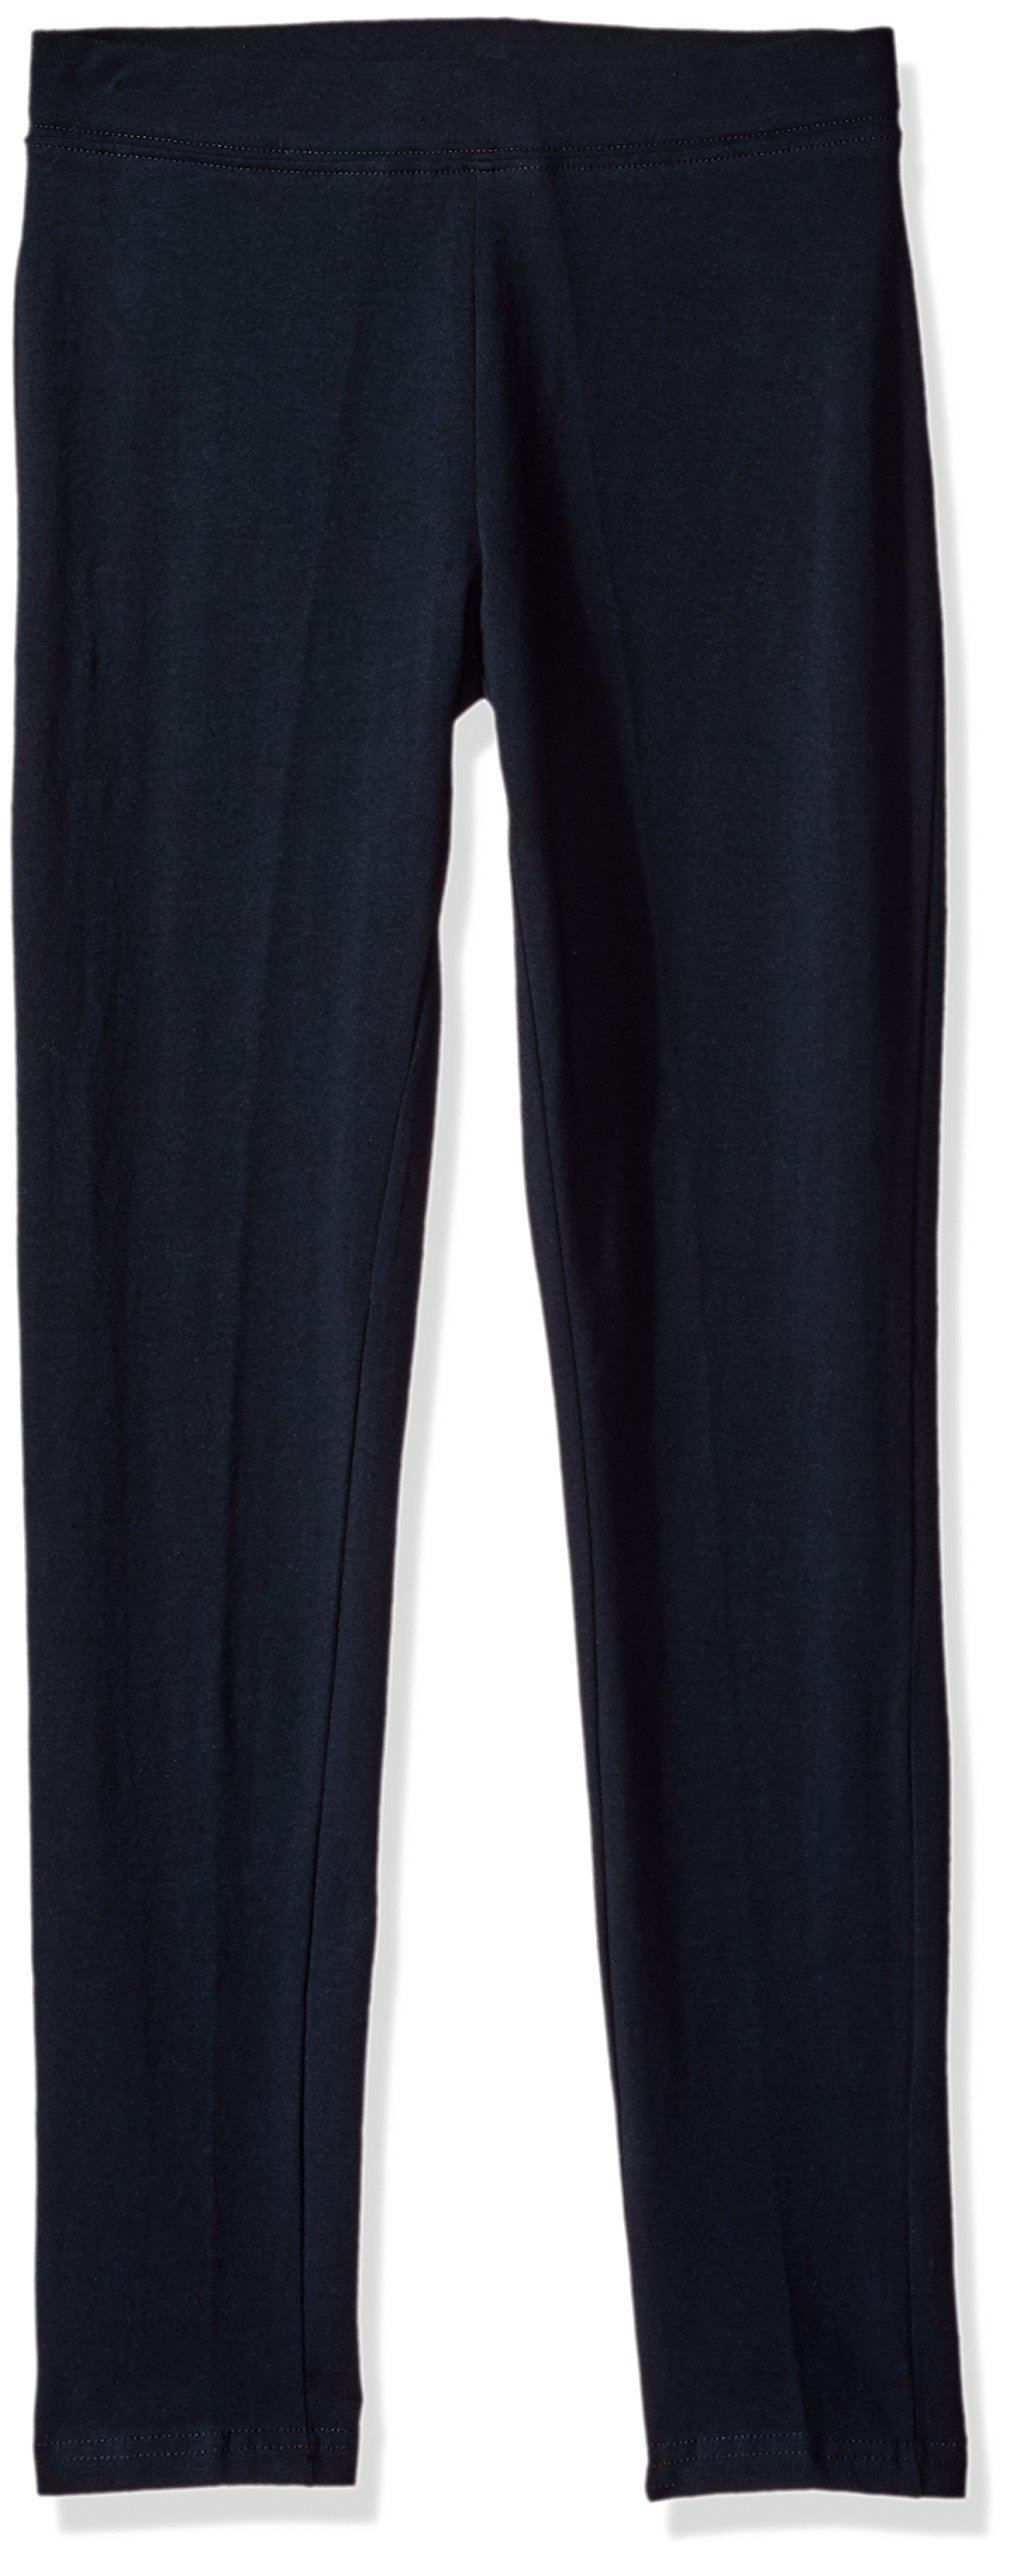 French Toast Big Girls' Ankle Length Legging, Navy, 14